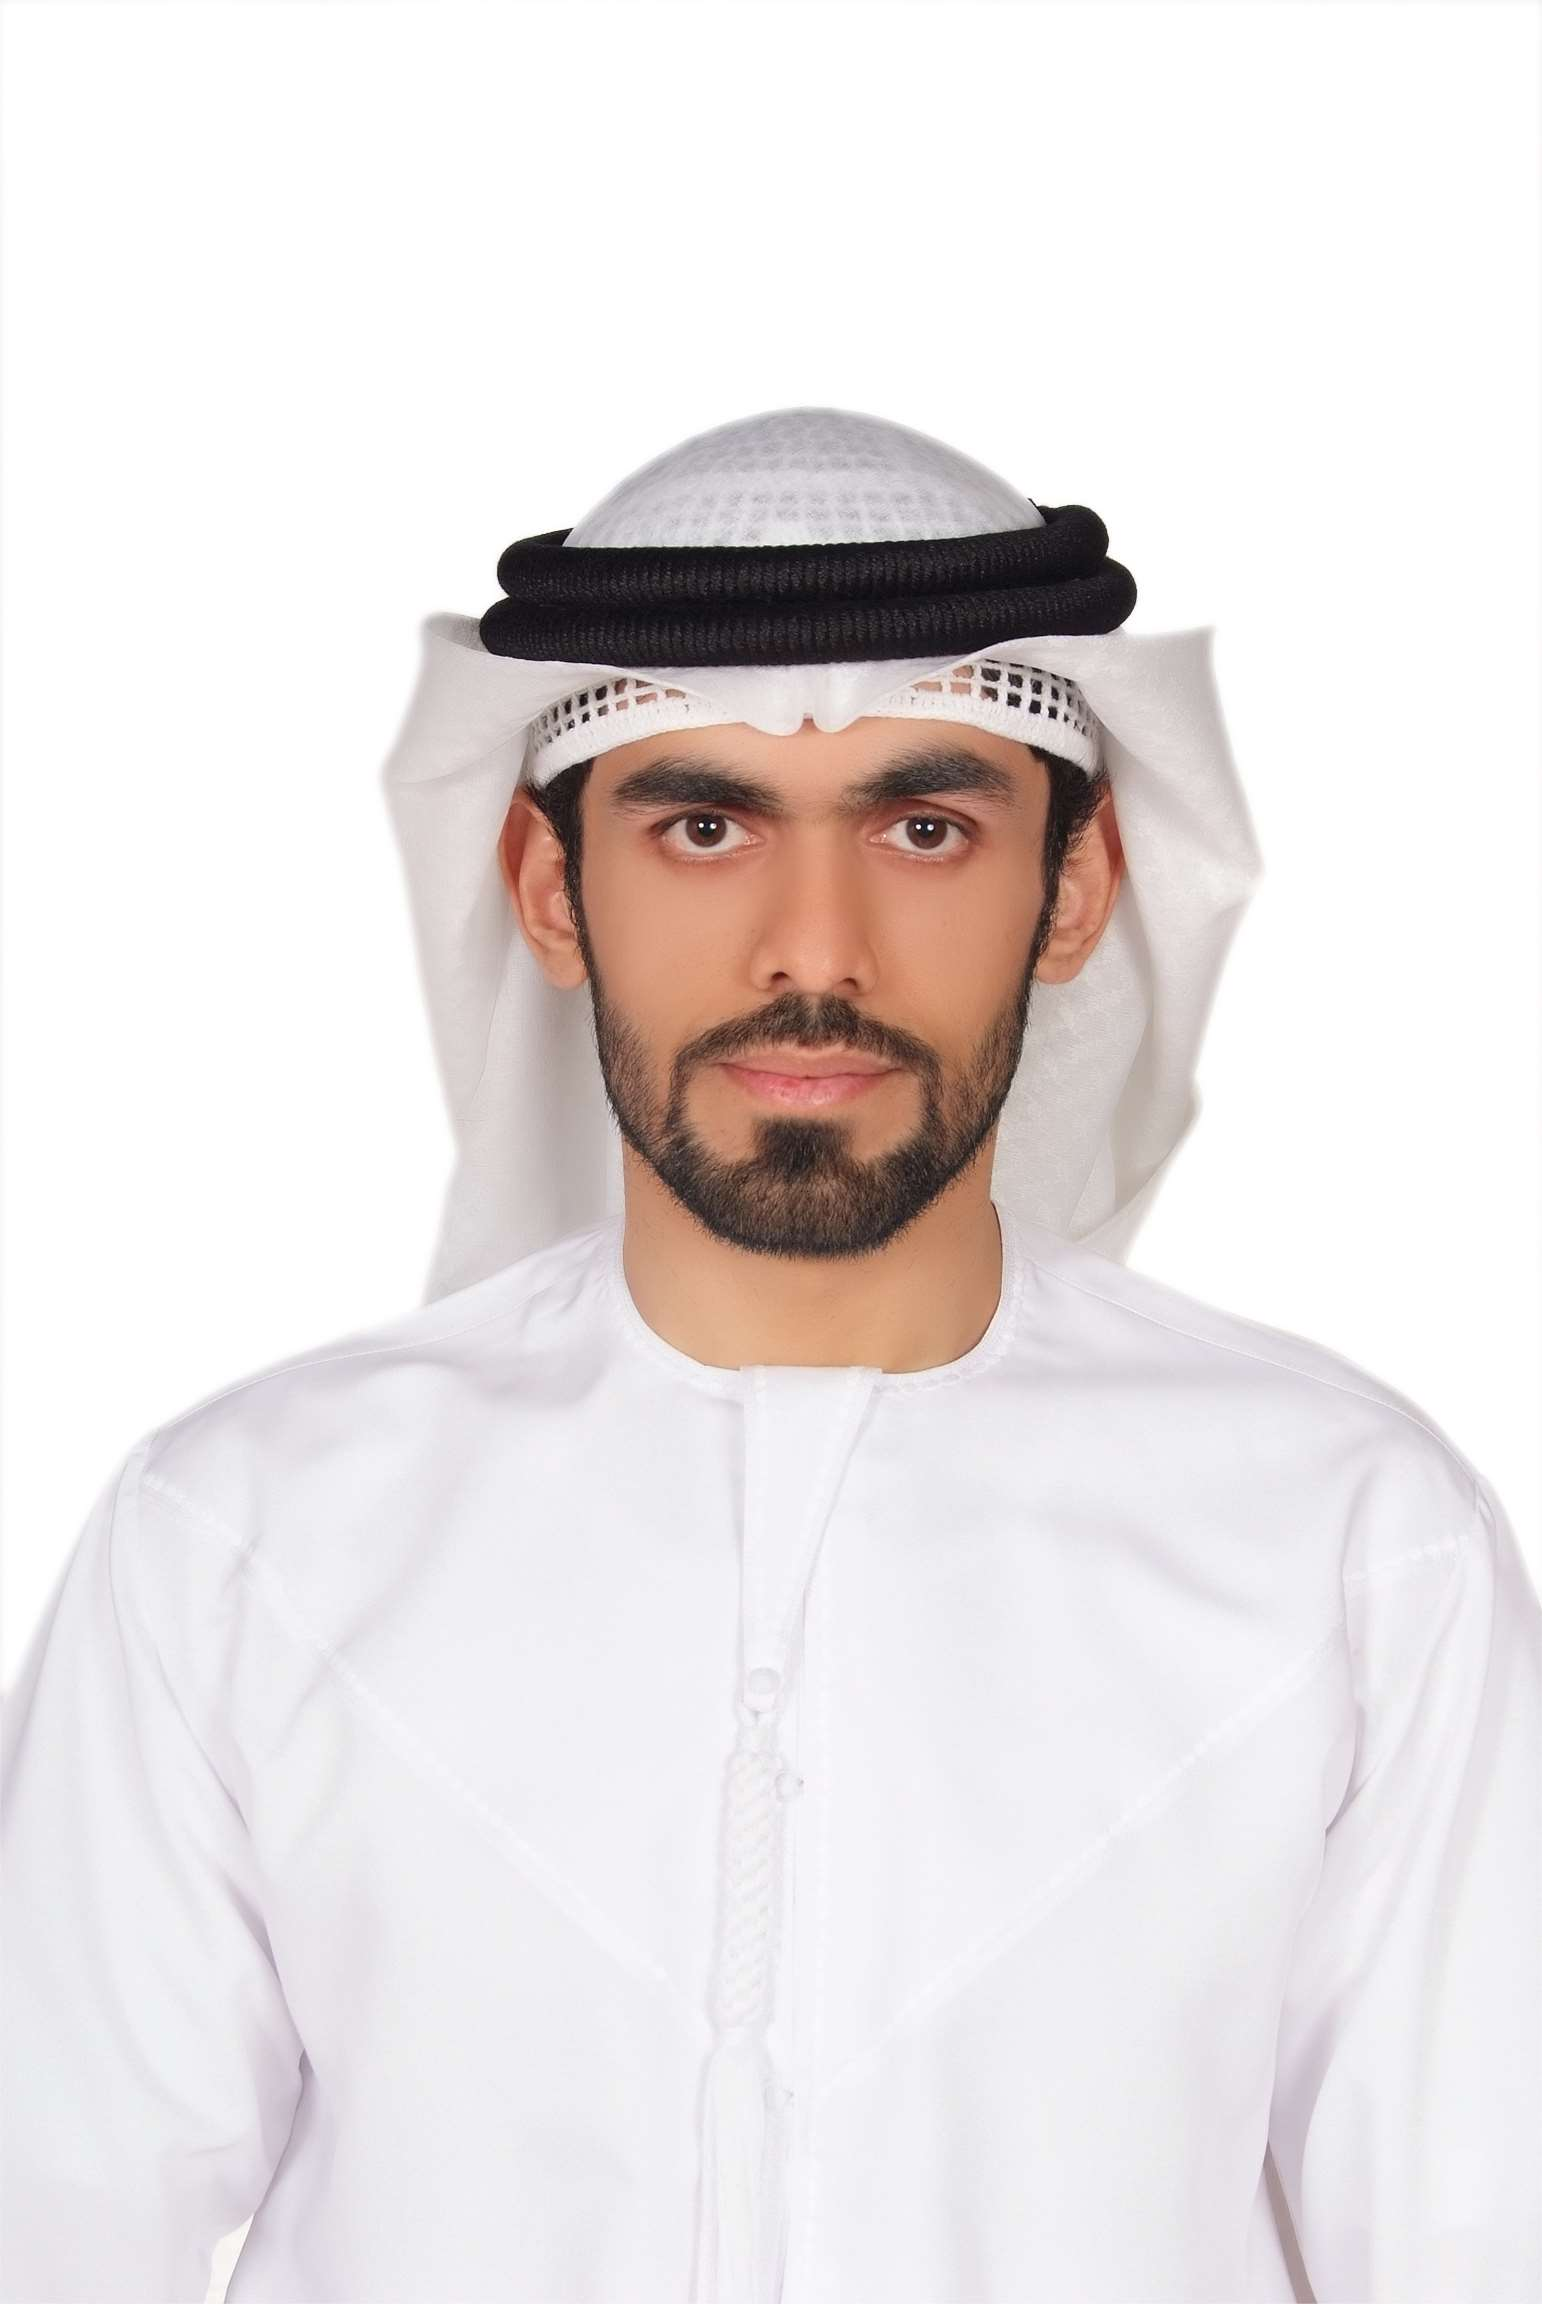 Photo of Rashed Alghafri